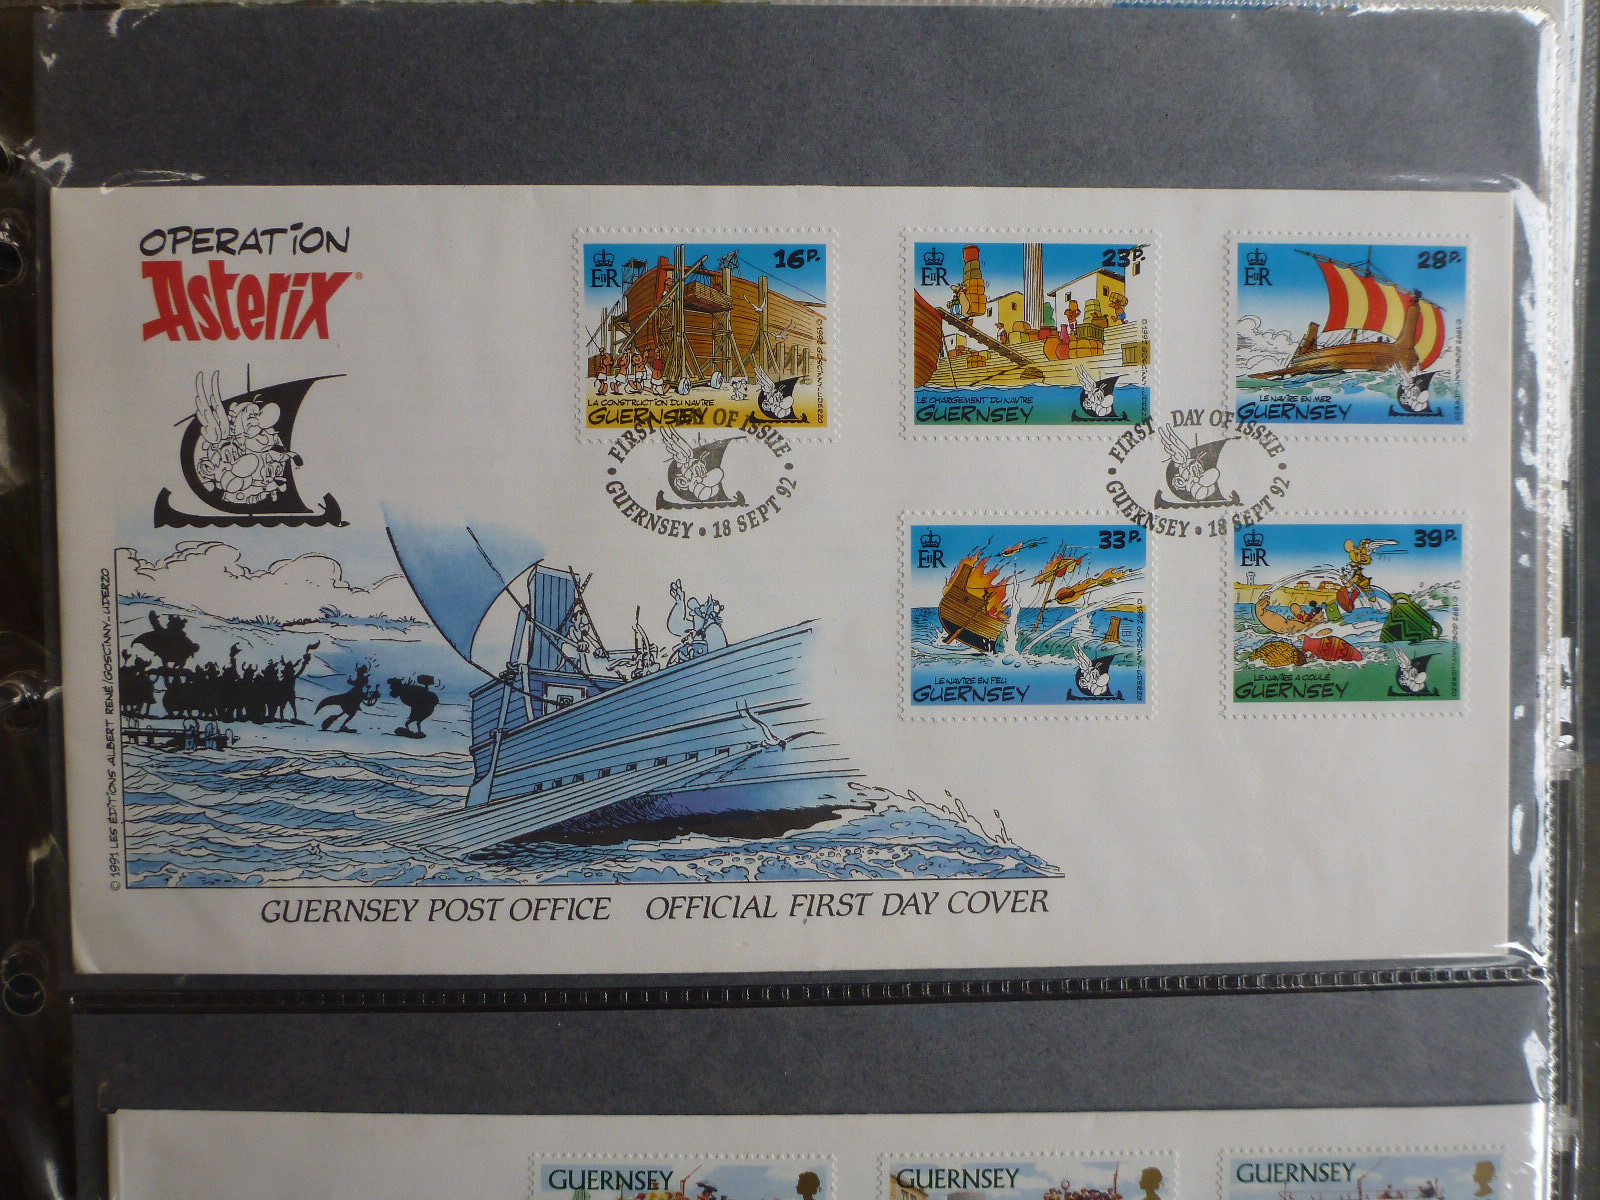 GUERNSEY 1992 OPERATION ASTERIX SET 5 STAMPS FDC FIRST DAY COVER